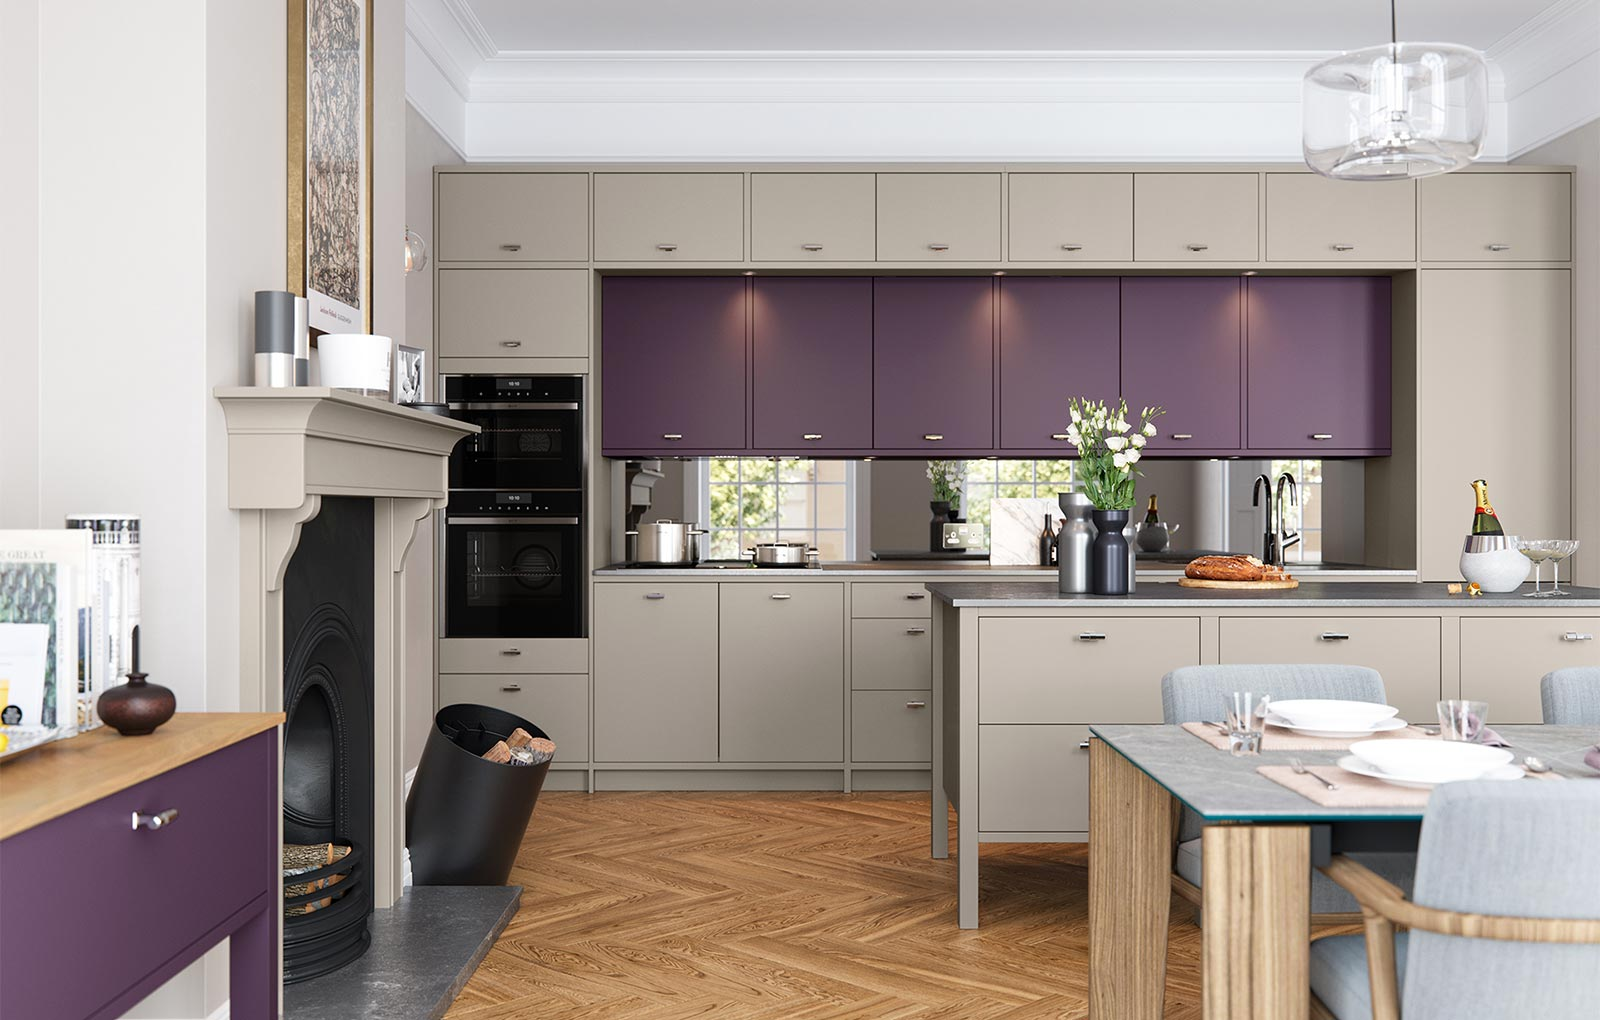 Modern purple and grey kitchen